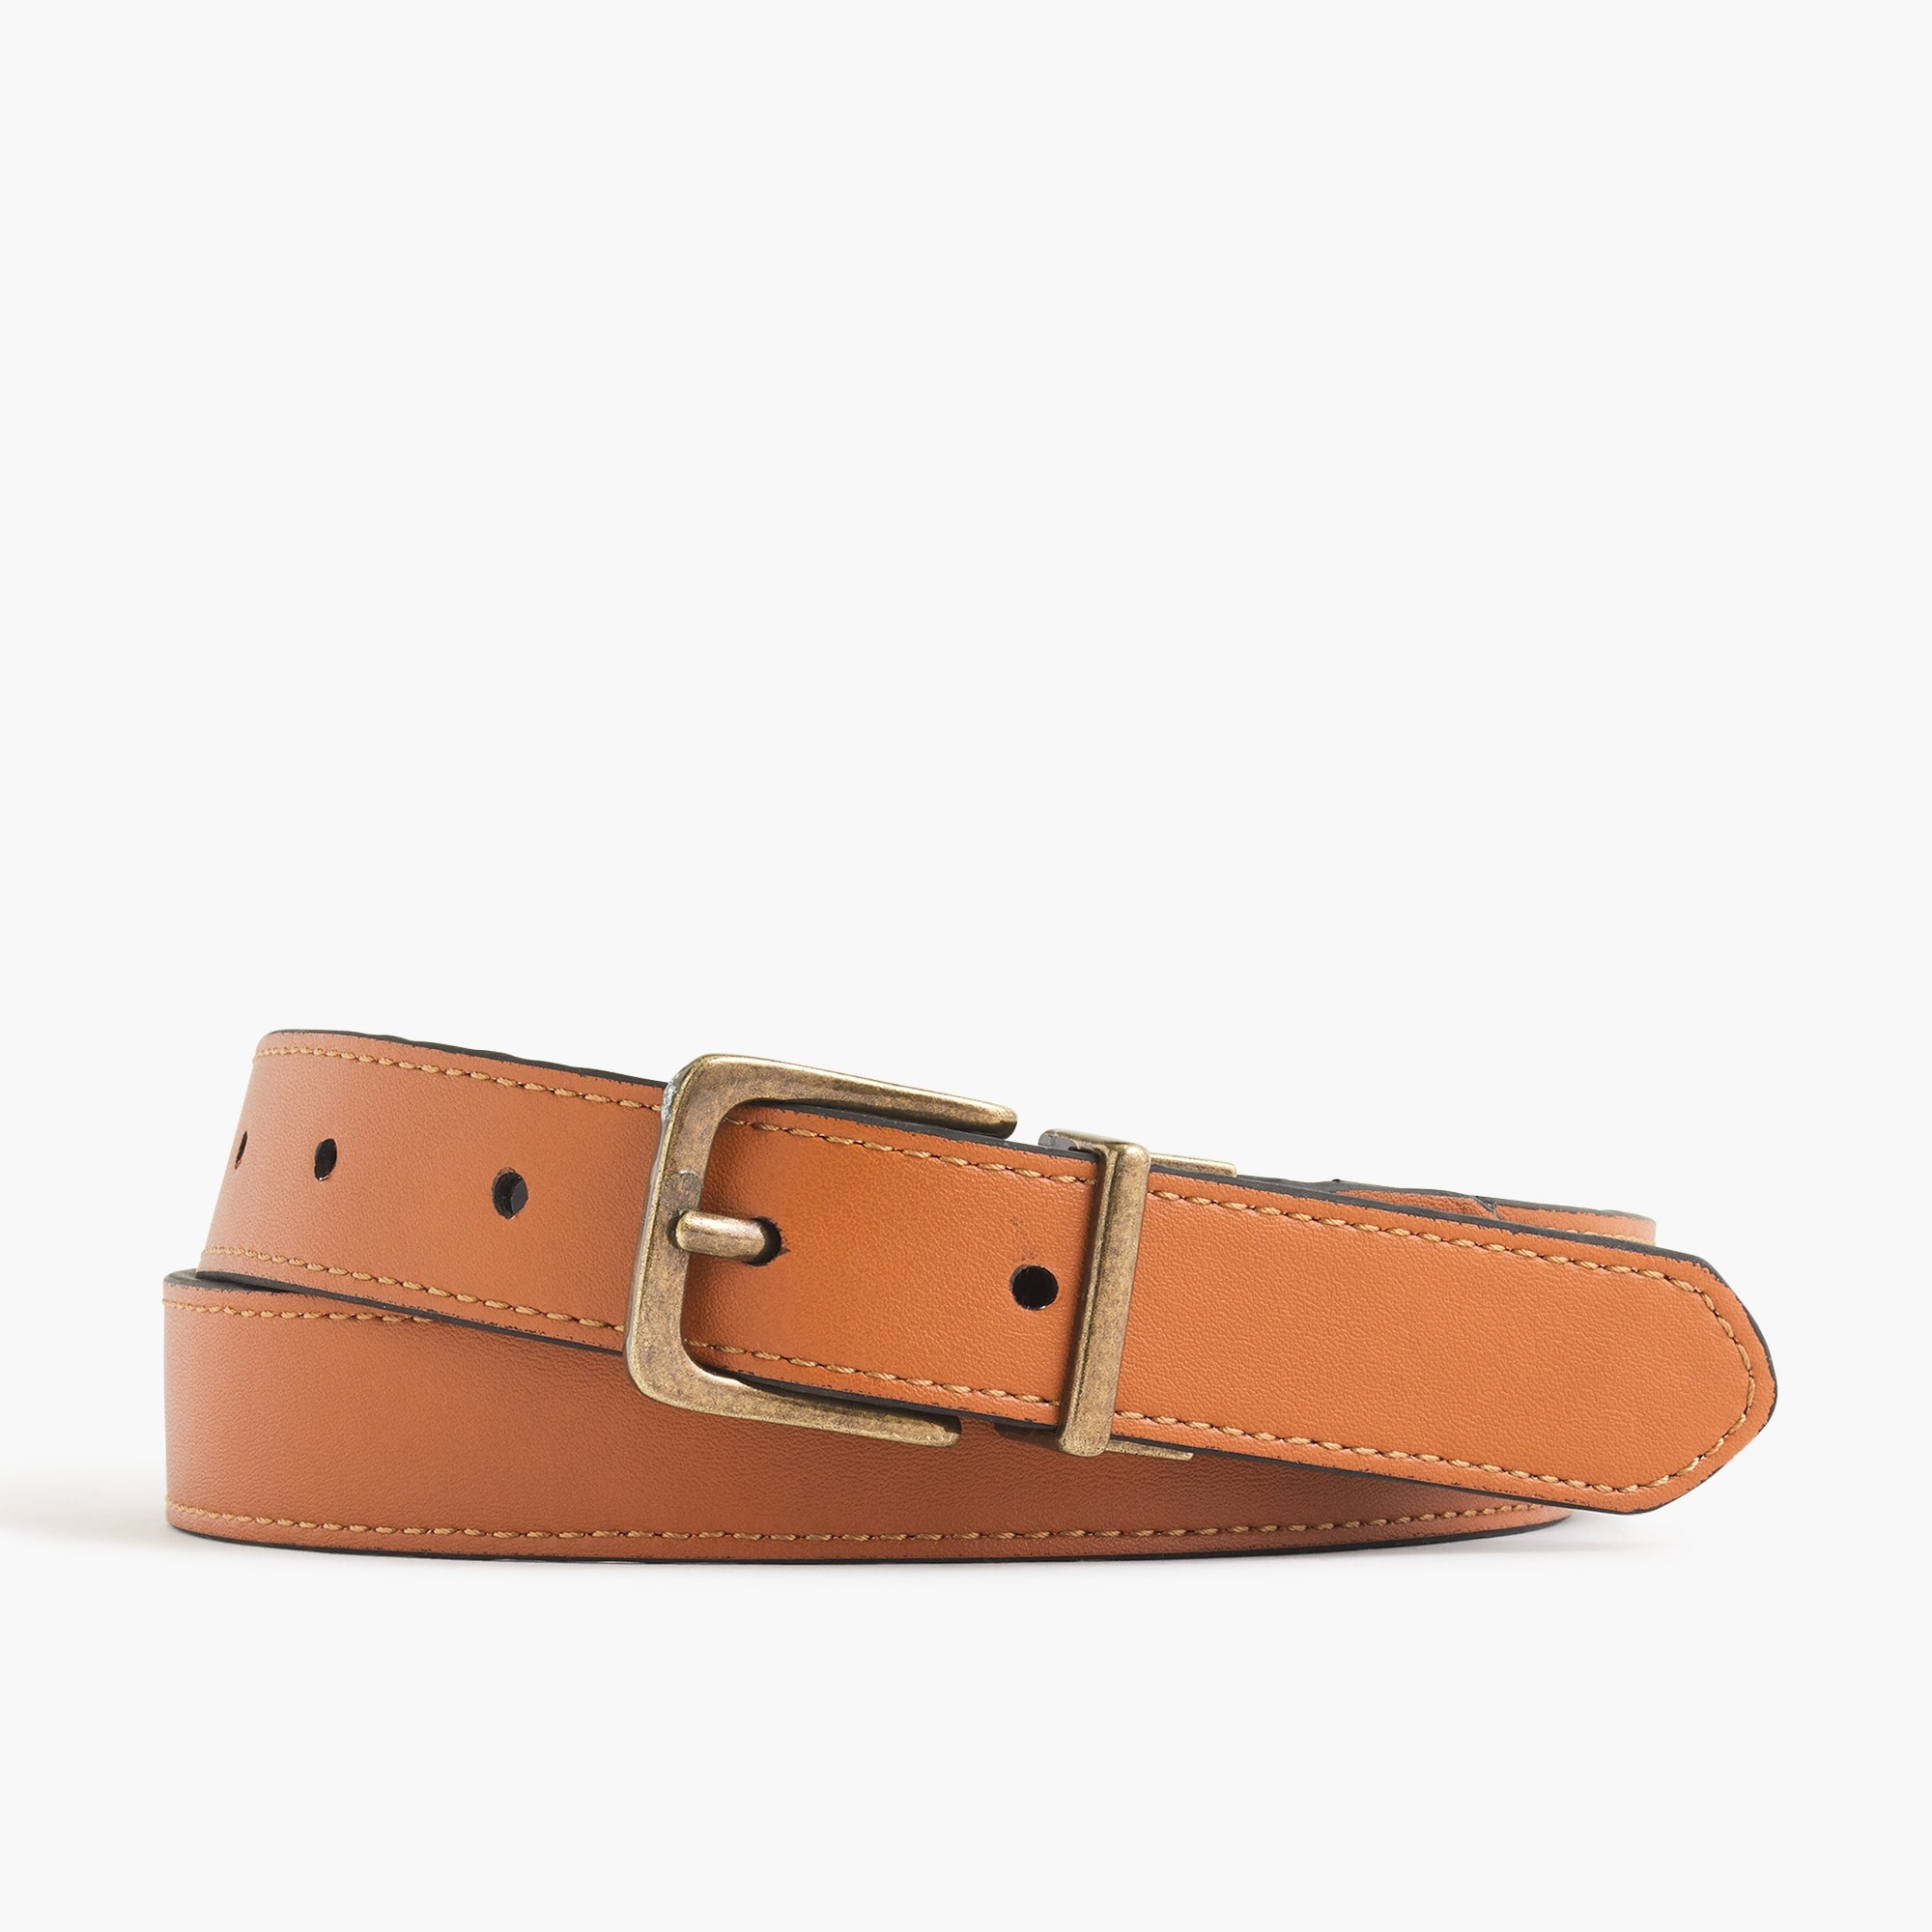 boys Boys' reversible belt